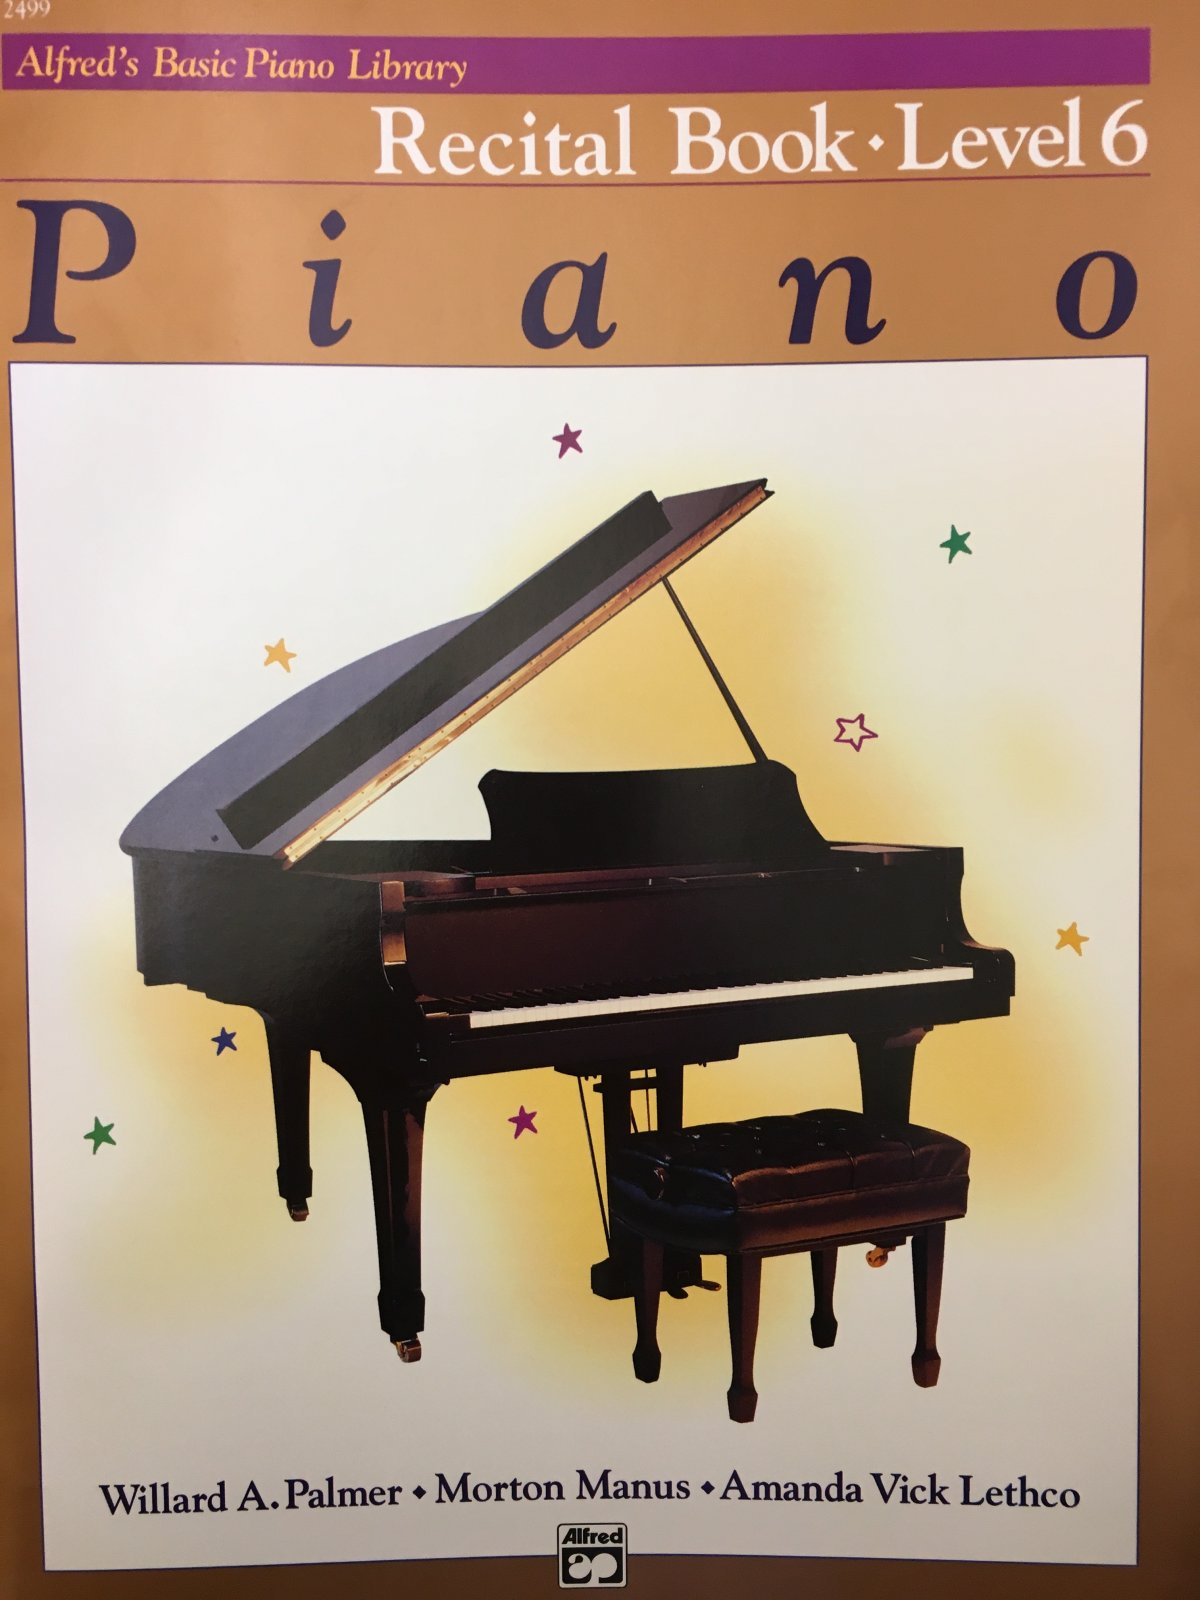 Alfred's Basic Piano Library Recital Book- Level 6